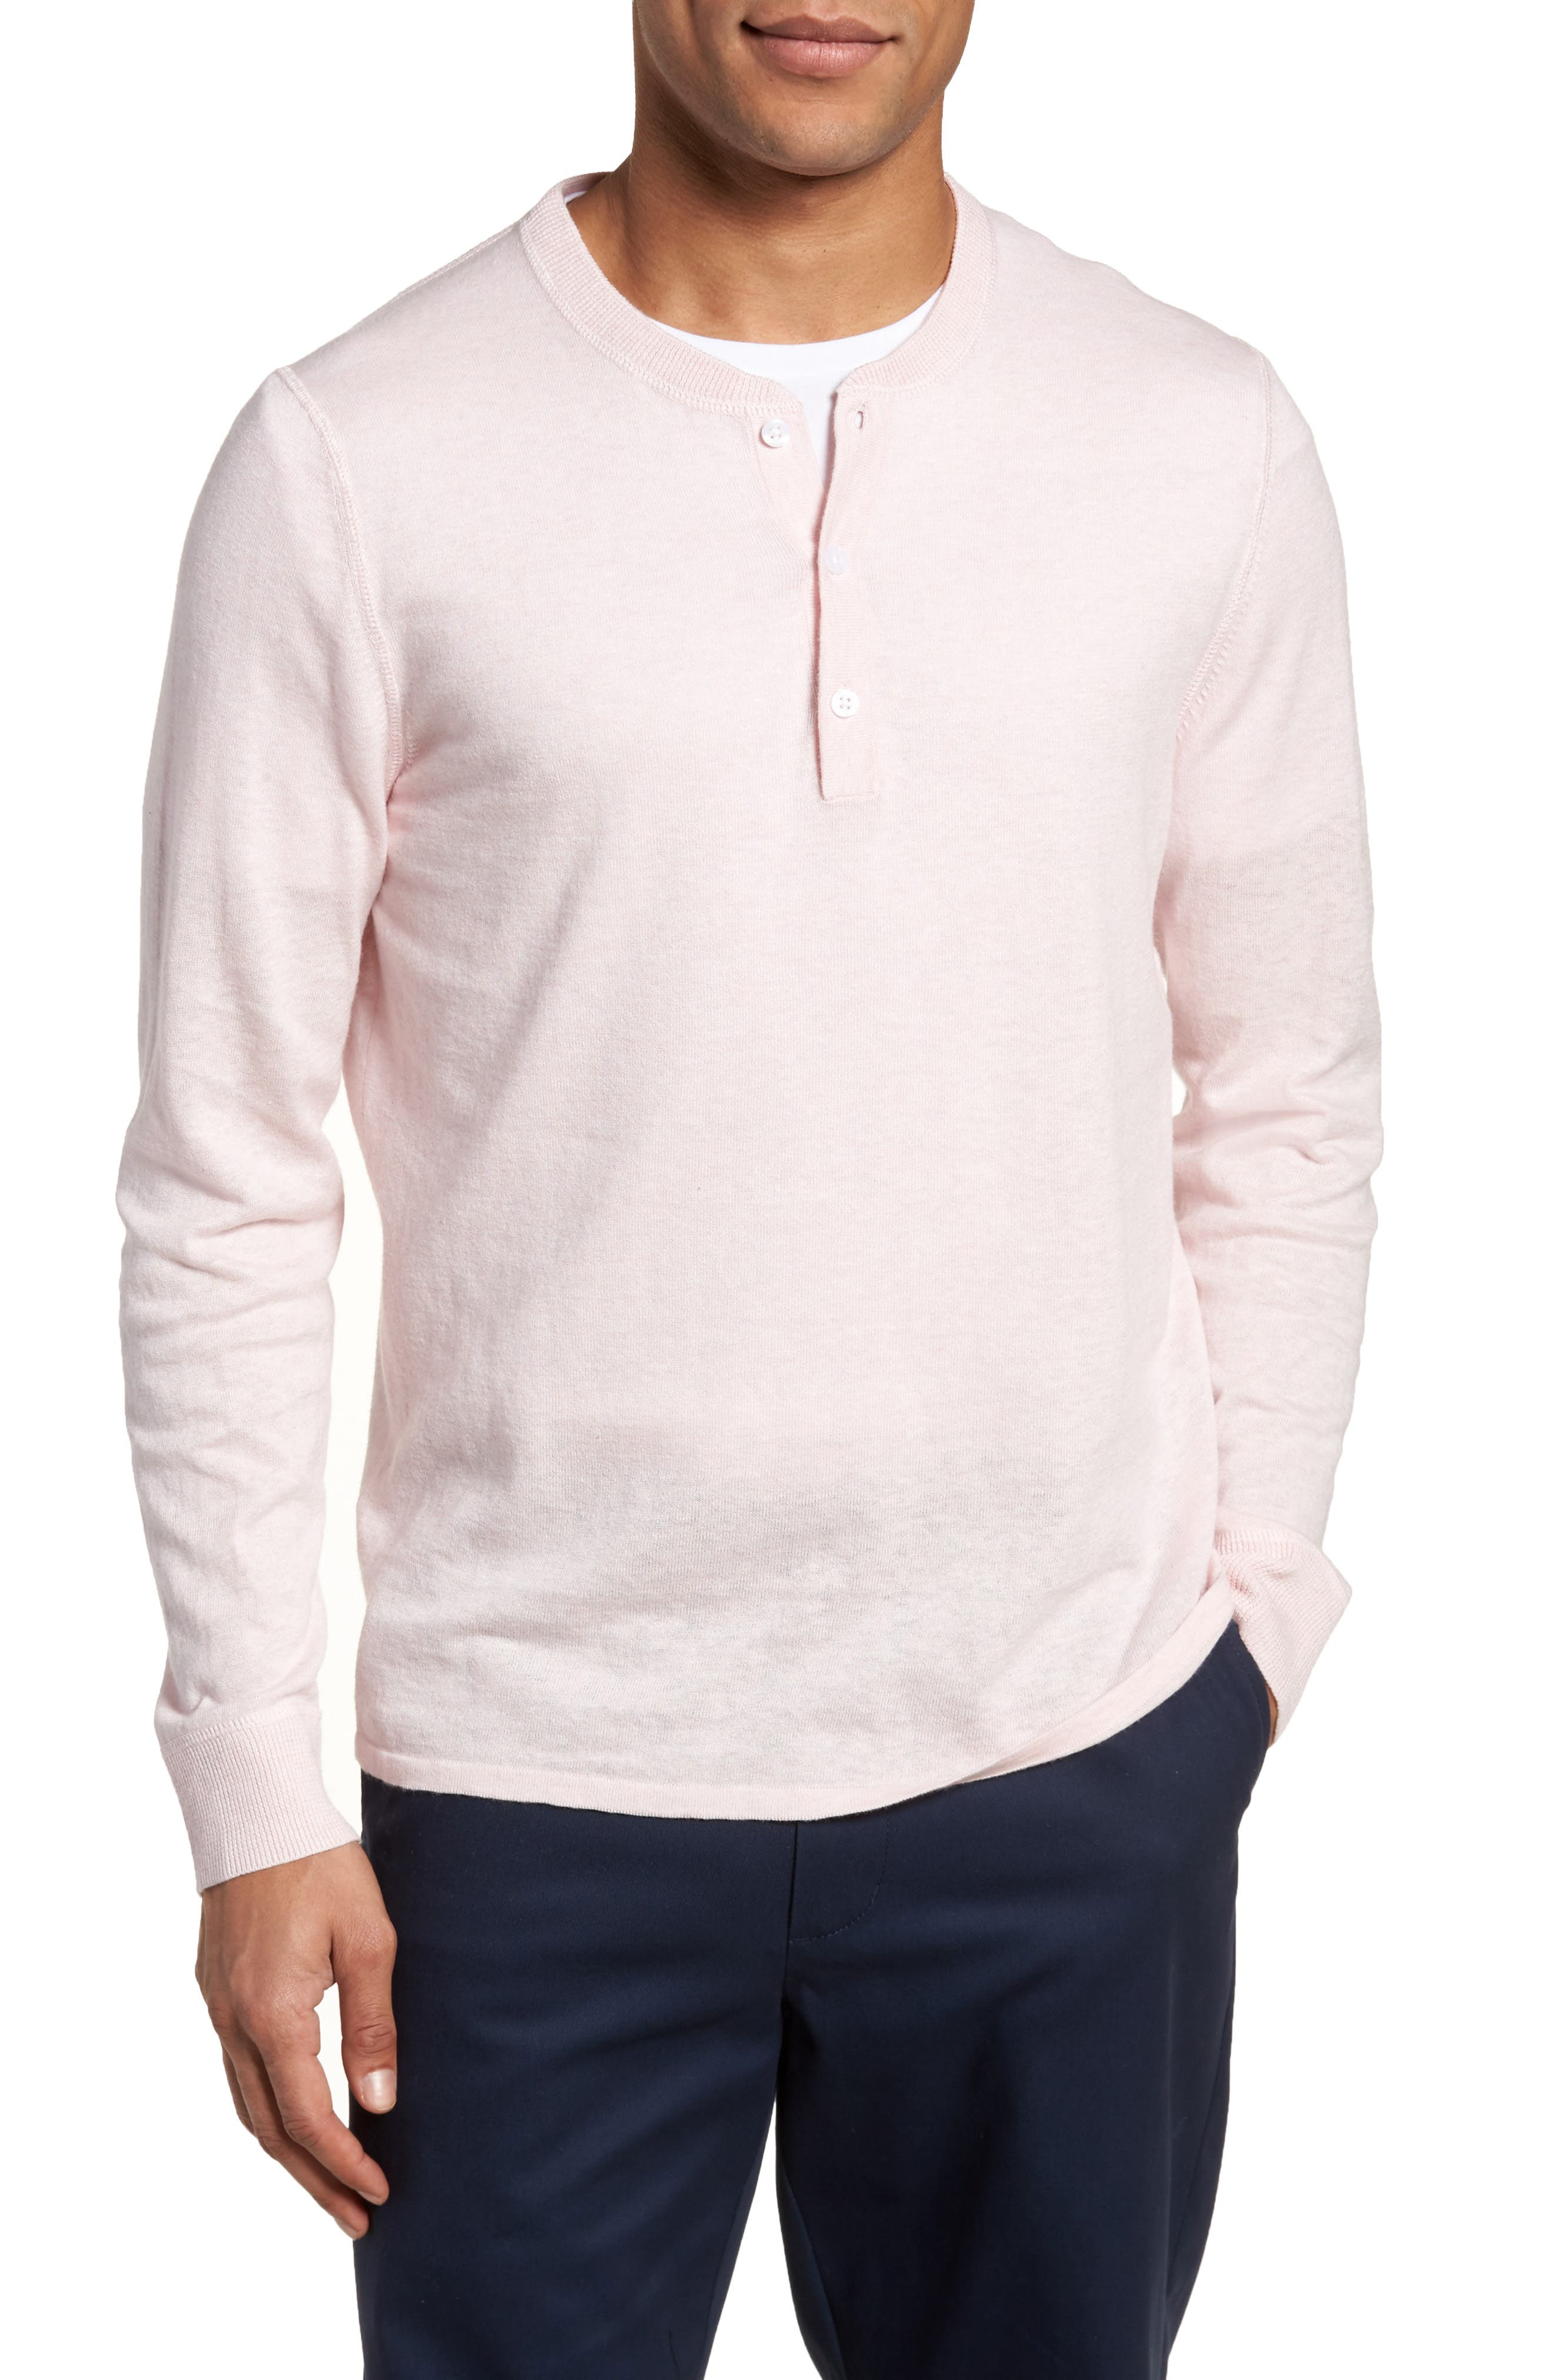 Nordstrom Men's Shop Long Sleeve Cotton & Linen Blend Henley